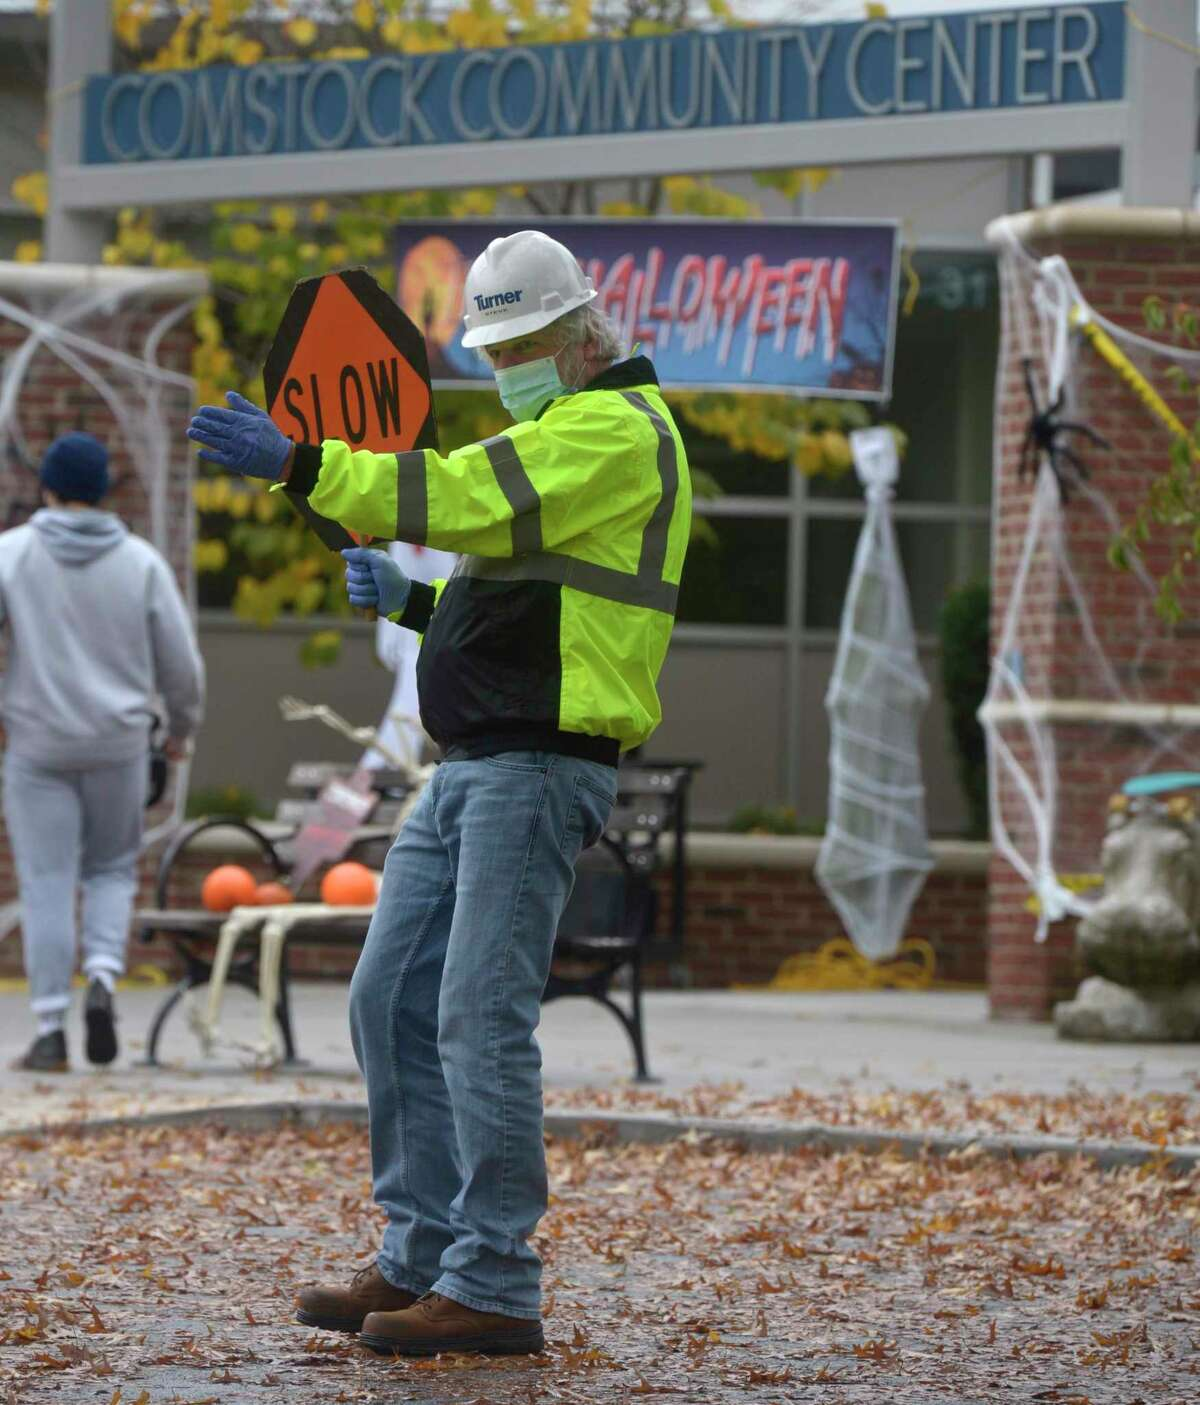 Steve Pierce, from the Parks & Recreation department, directs traffic at the drive-thru Halloween event held at the Comstock Community Center on Friday afternoon, October 30, 2020, in Wilton, Conn.